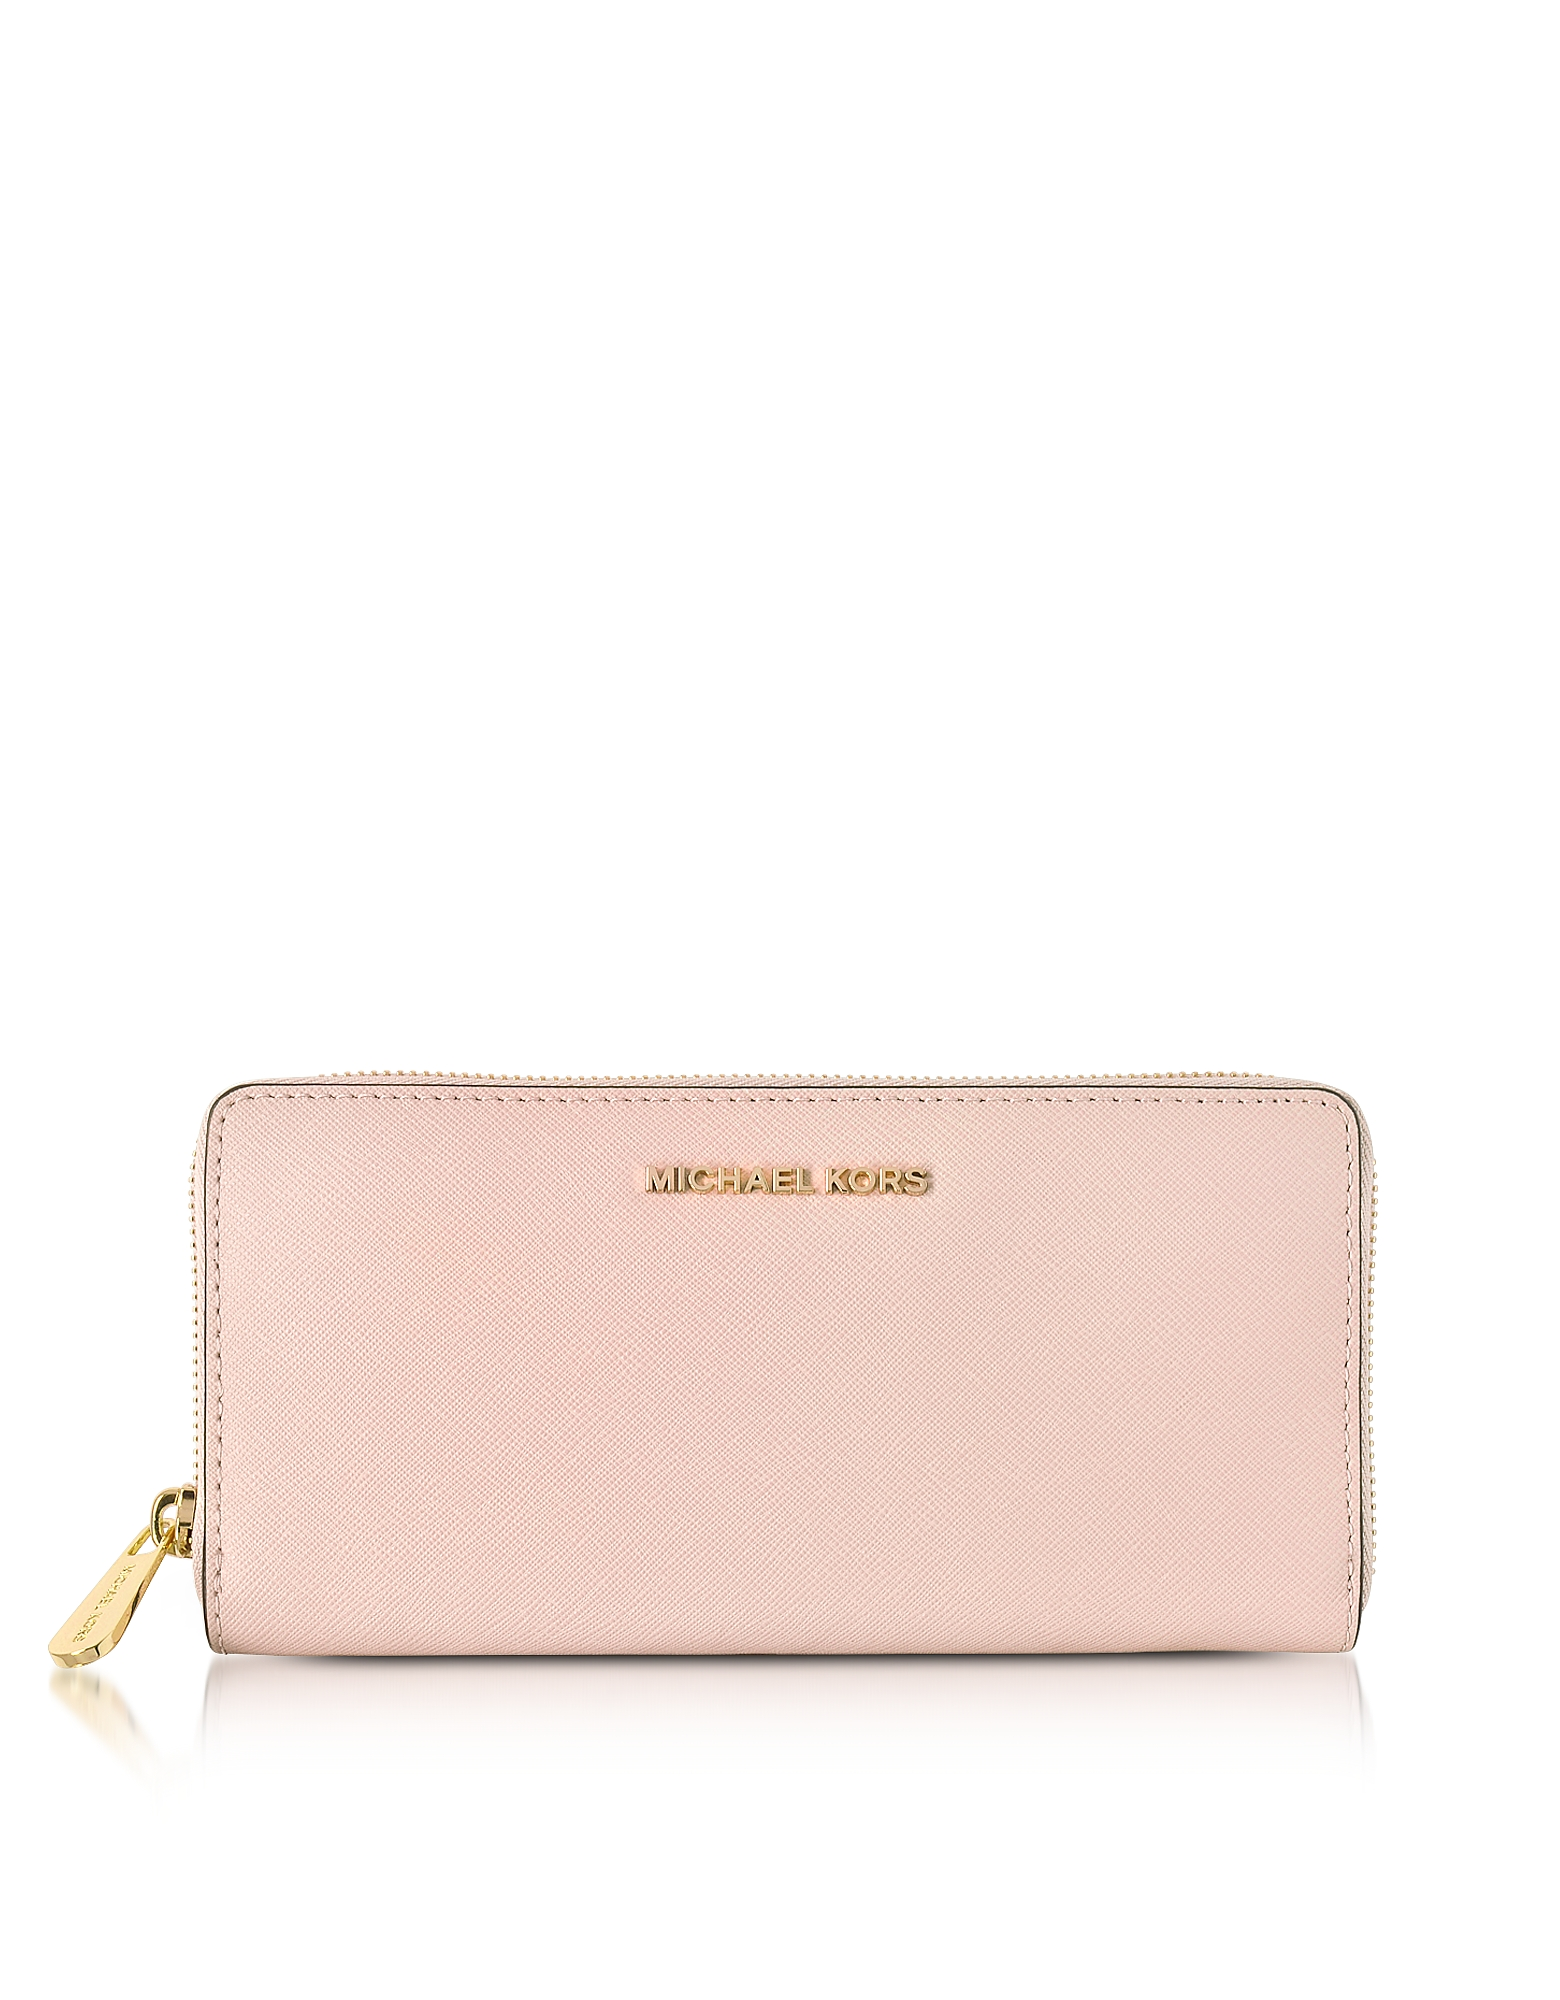 Michael Kors Soft Pink Jet Set Travel Saffiano Leather Continental Wallet